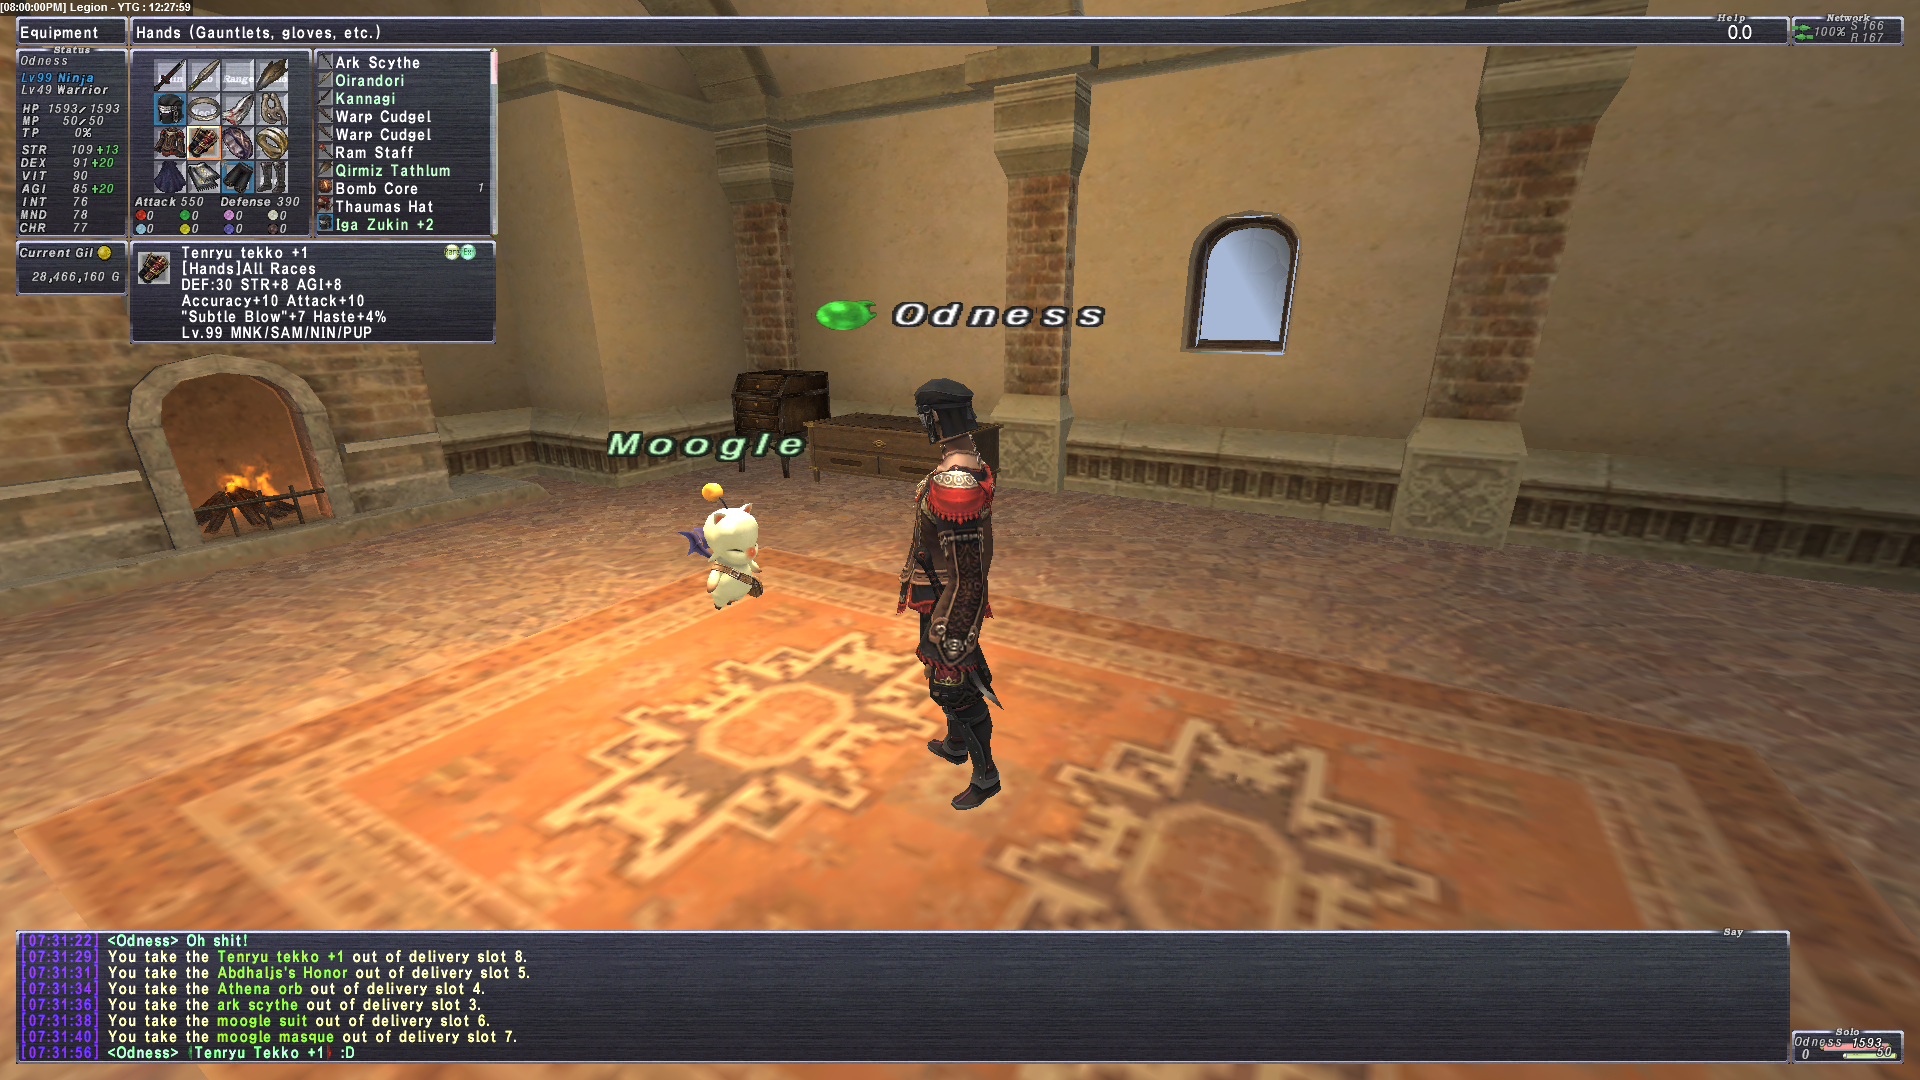 odesseiron ffxi prize scythe that consolation kill worth anything didnt losers sadly actual wasnt begun hitting giveaway vanafest golden gobbiebag isnt bitching about talking